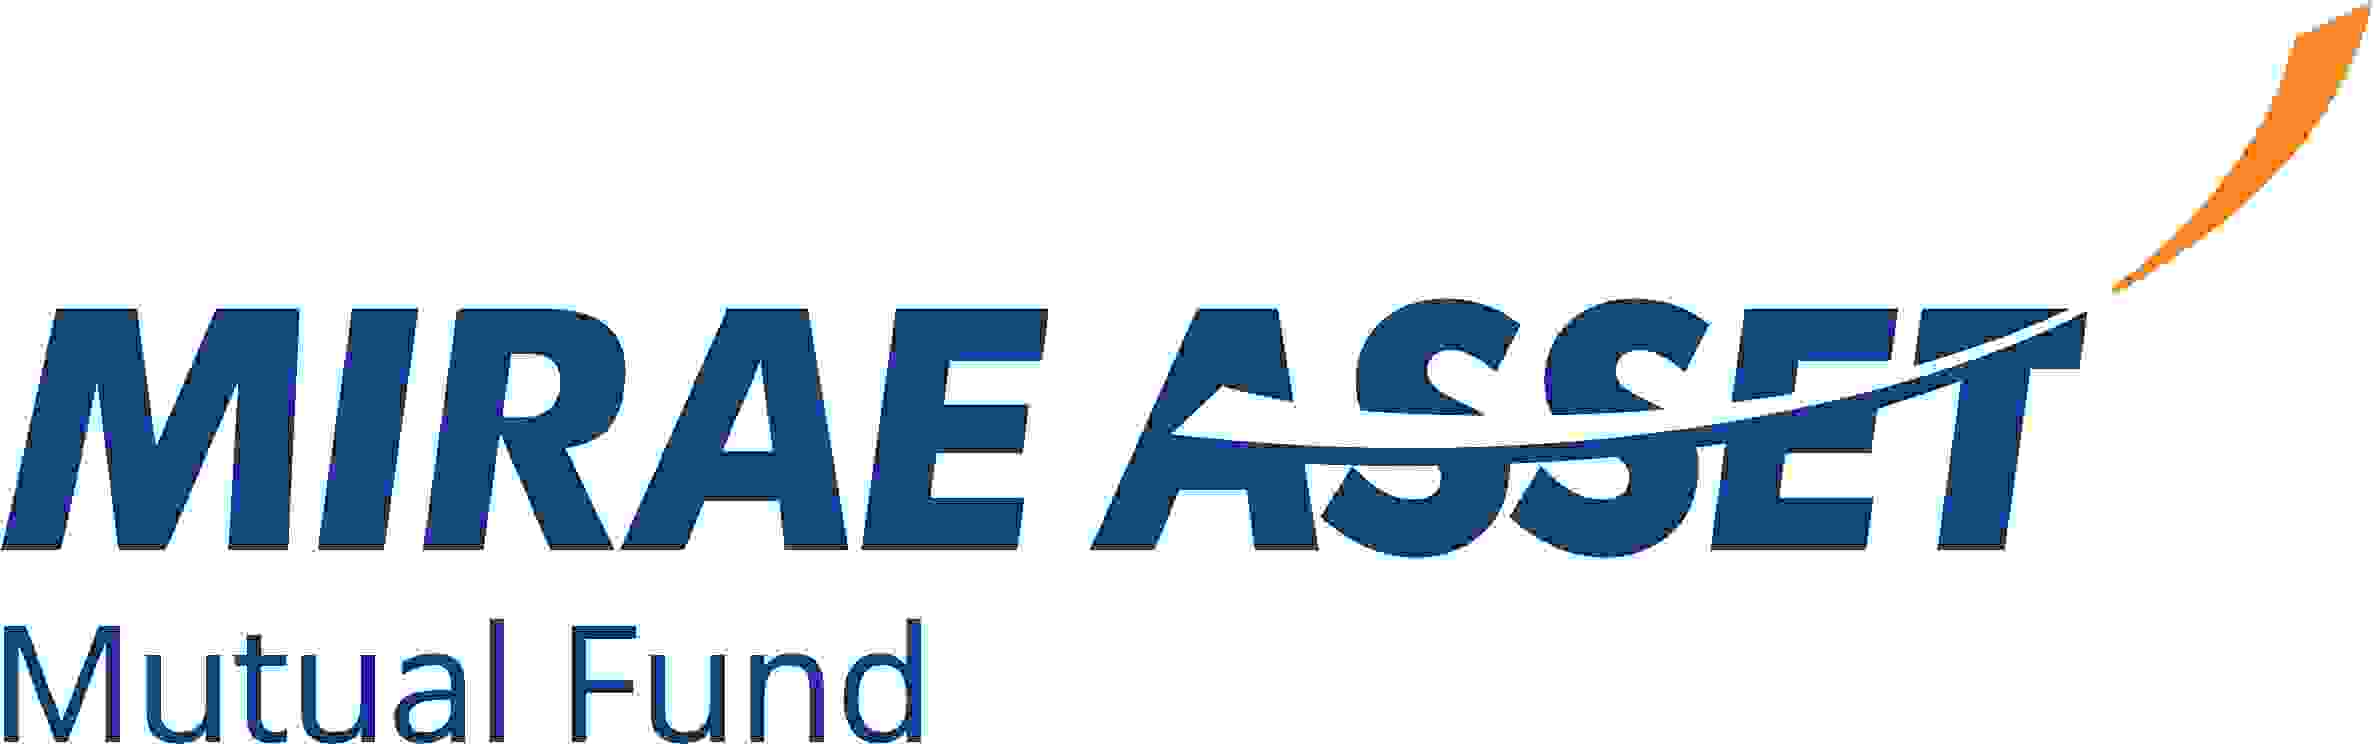 mirae asset Mutual Fund logo to homepage